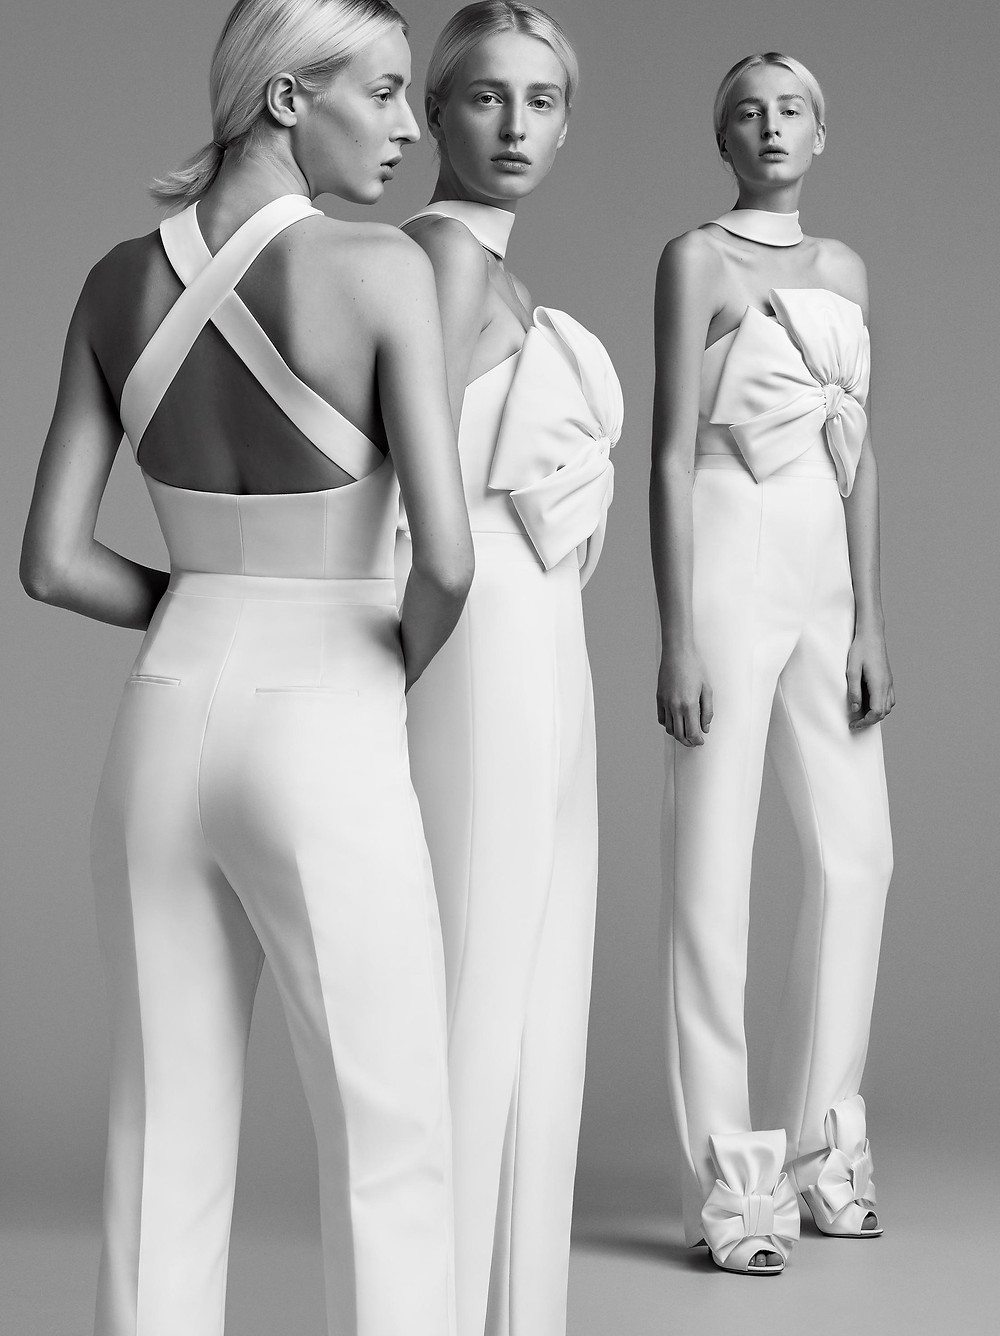 Viktor & Rolf wedding jumpsuit or pantsuits with a bow